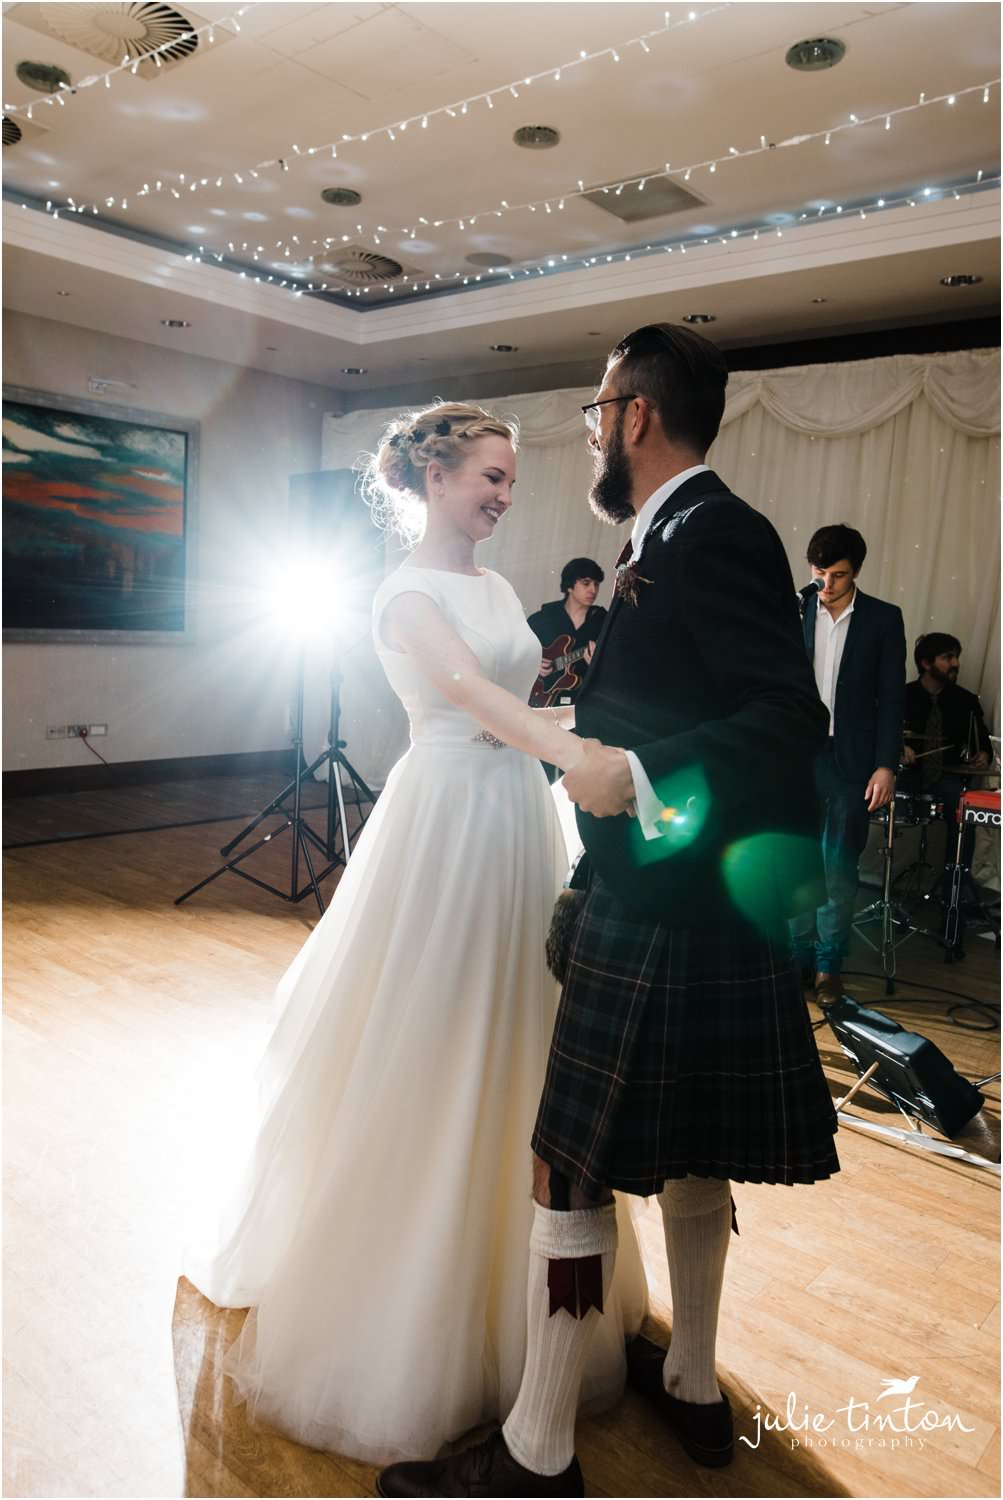 Bride and Groom's first dance at Norton House Hotel